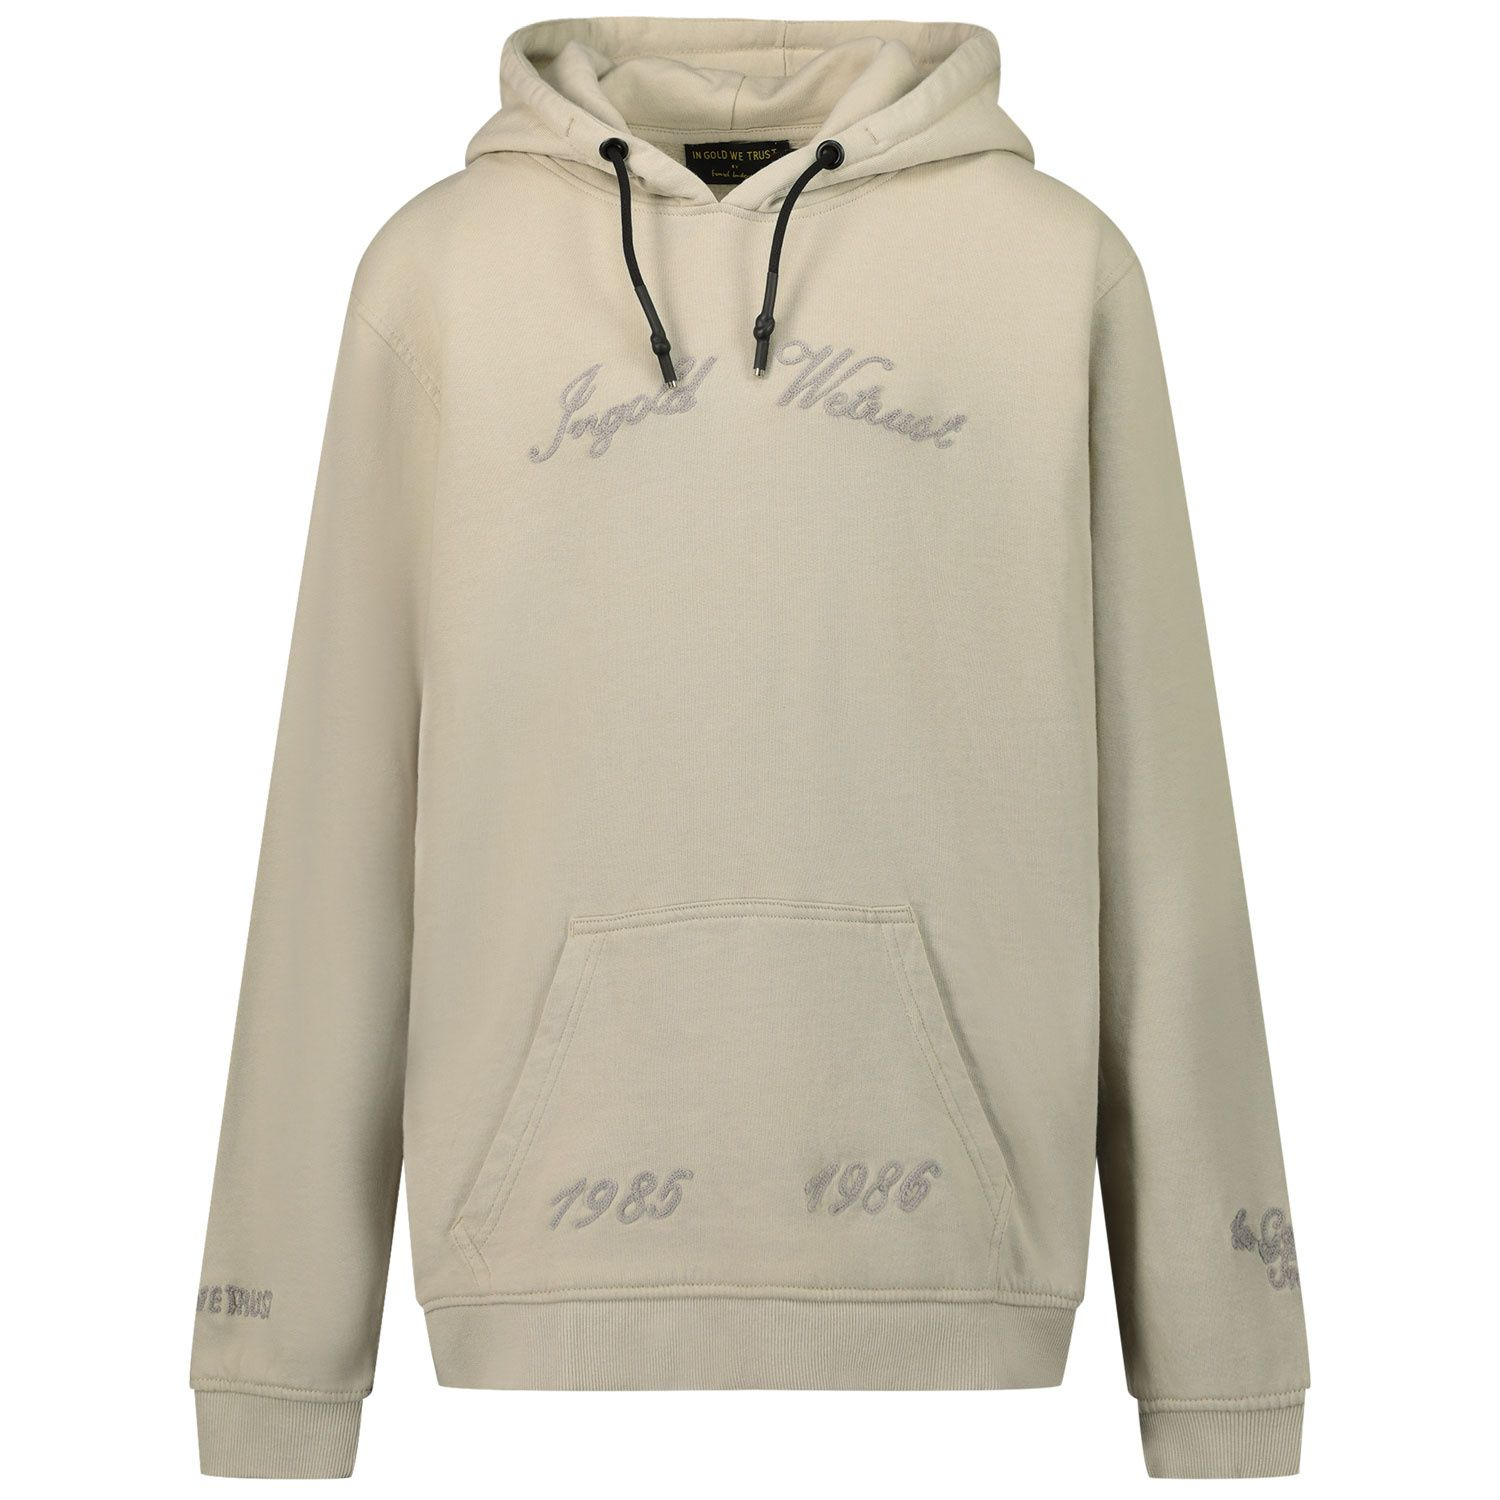 Picture of in Gold We Trust CHAIN EMBROIDERY HOODIE kids sweater light beige